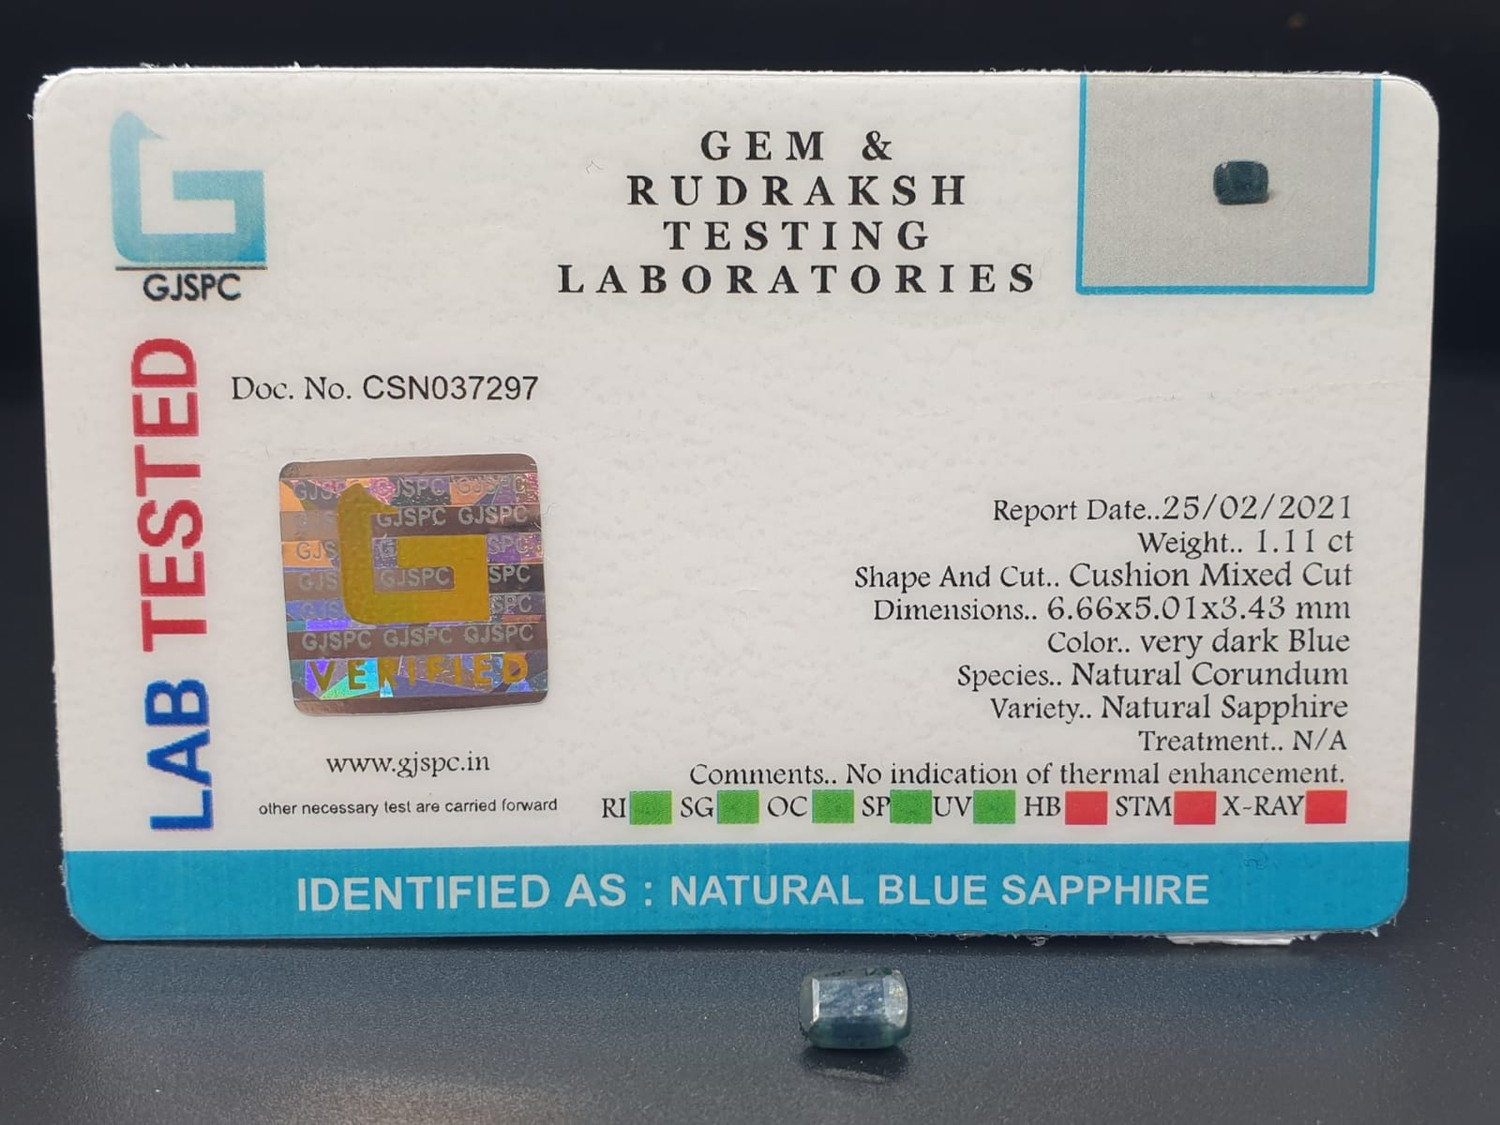 1.11 Cts Natural Blue Sapphire & 6.26 Cts Natural opal. Both GJSPC Certified - Image 2 of 8